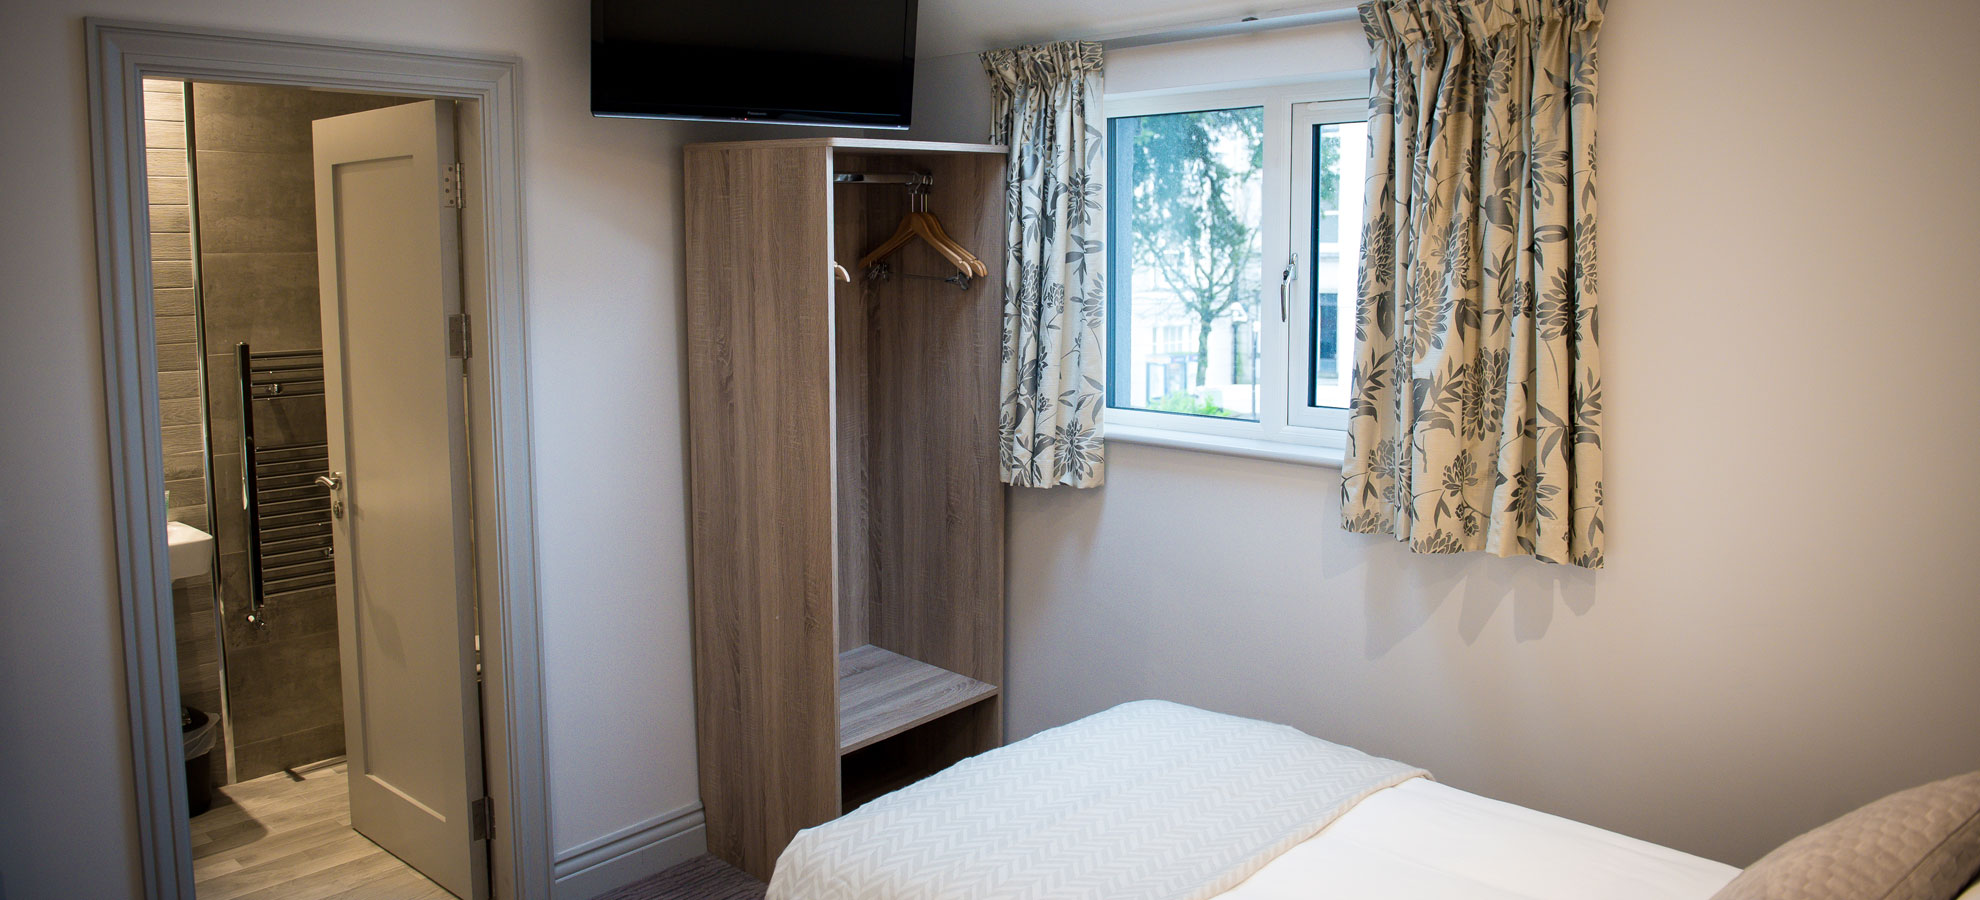 Double or Twin Room at Tatler Jack, Killarney